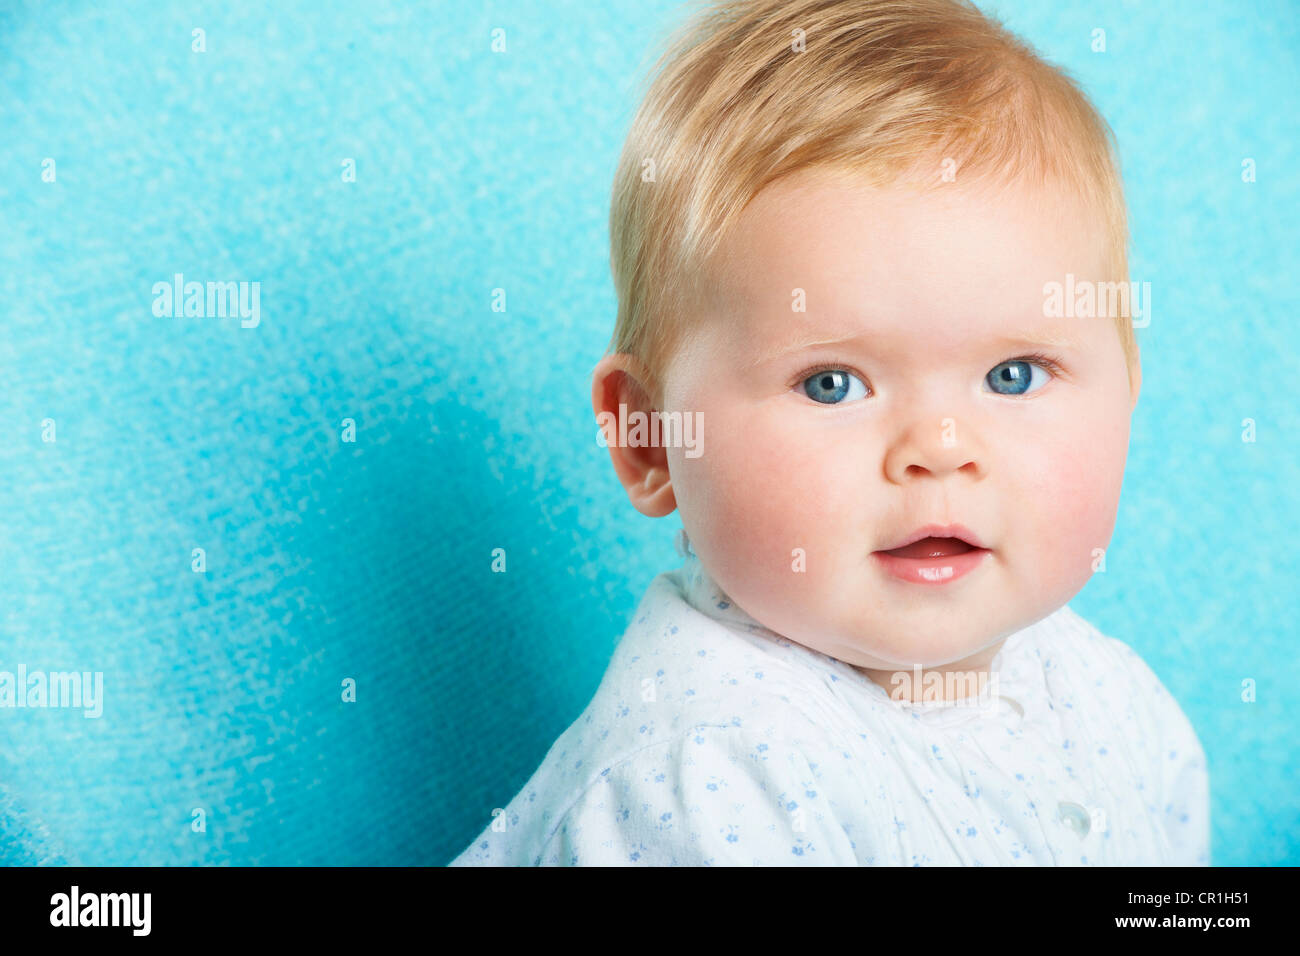 Close up of infants face - Stock Image